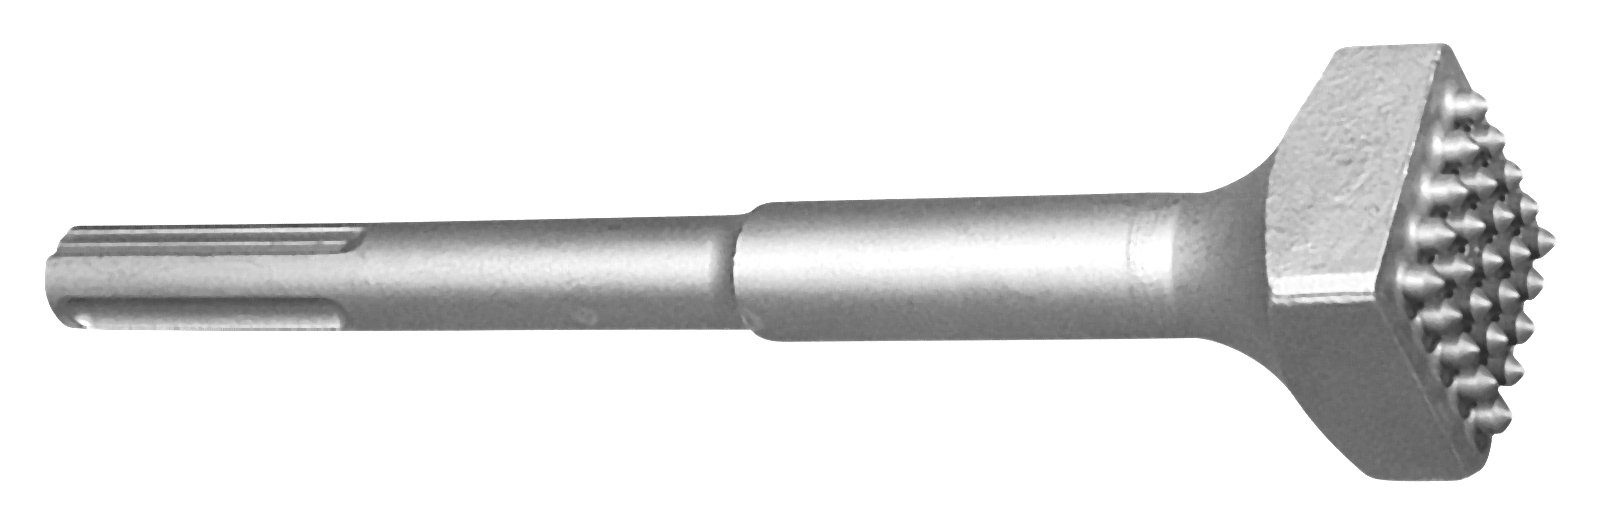 Champion Chisel, SDS-MAX Shank Carbide Tipped Bushing Tool with 25 teeth